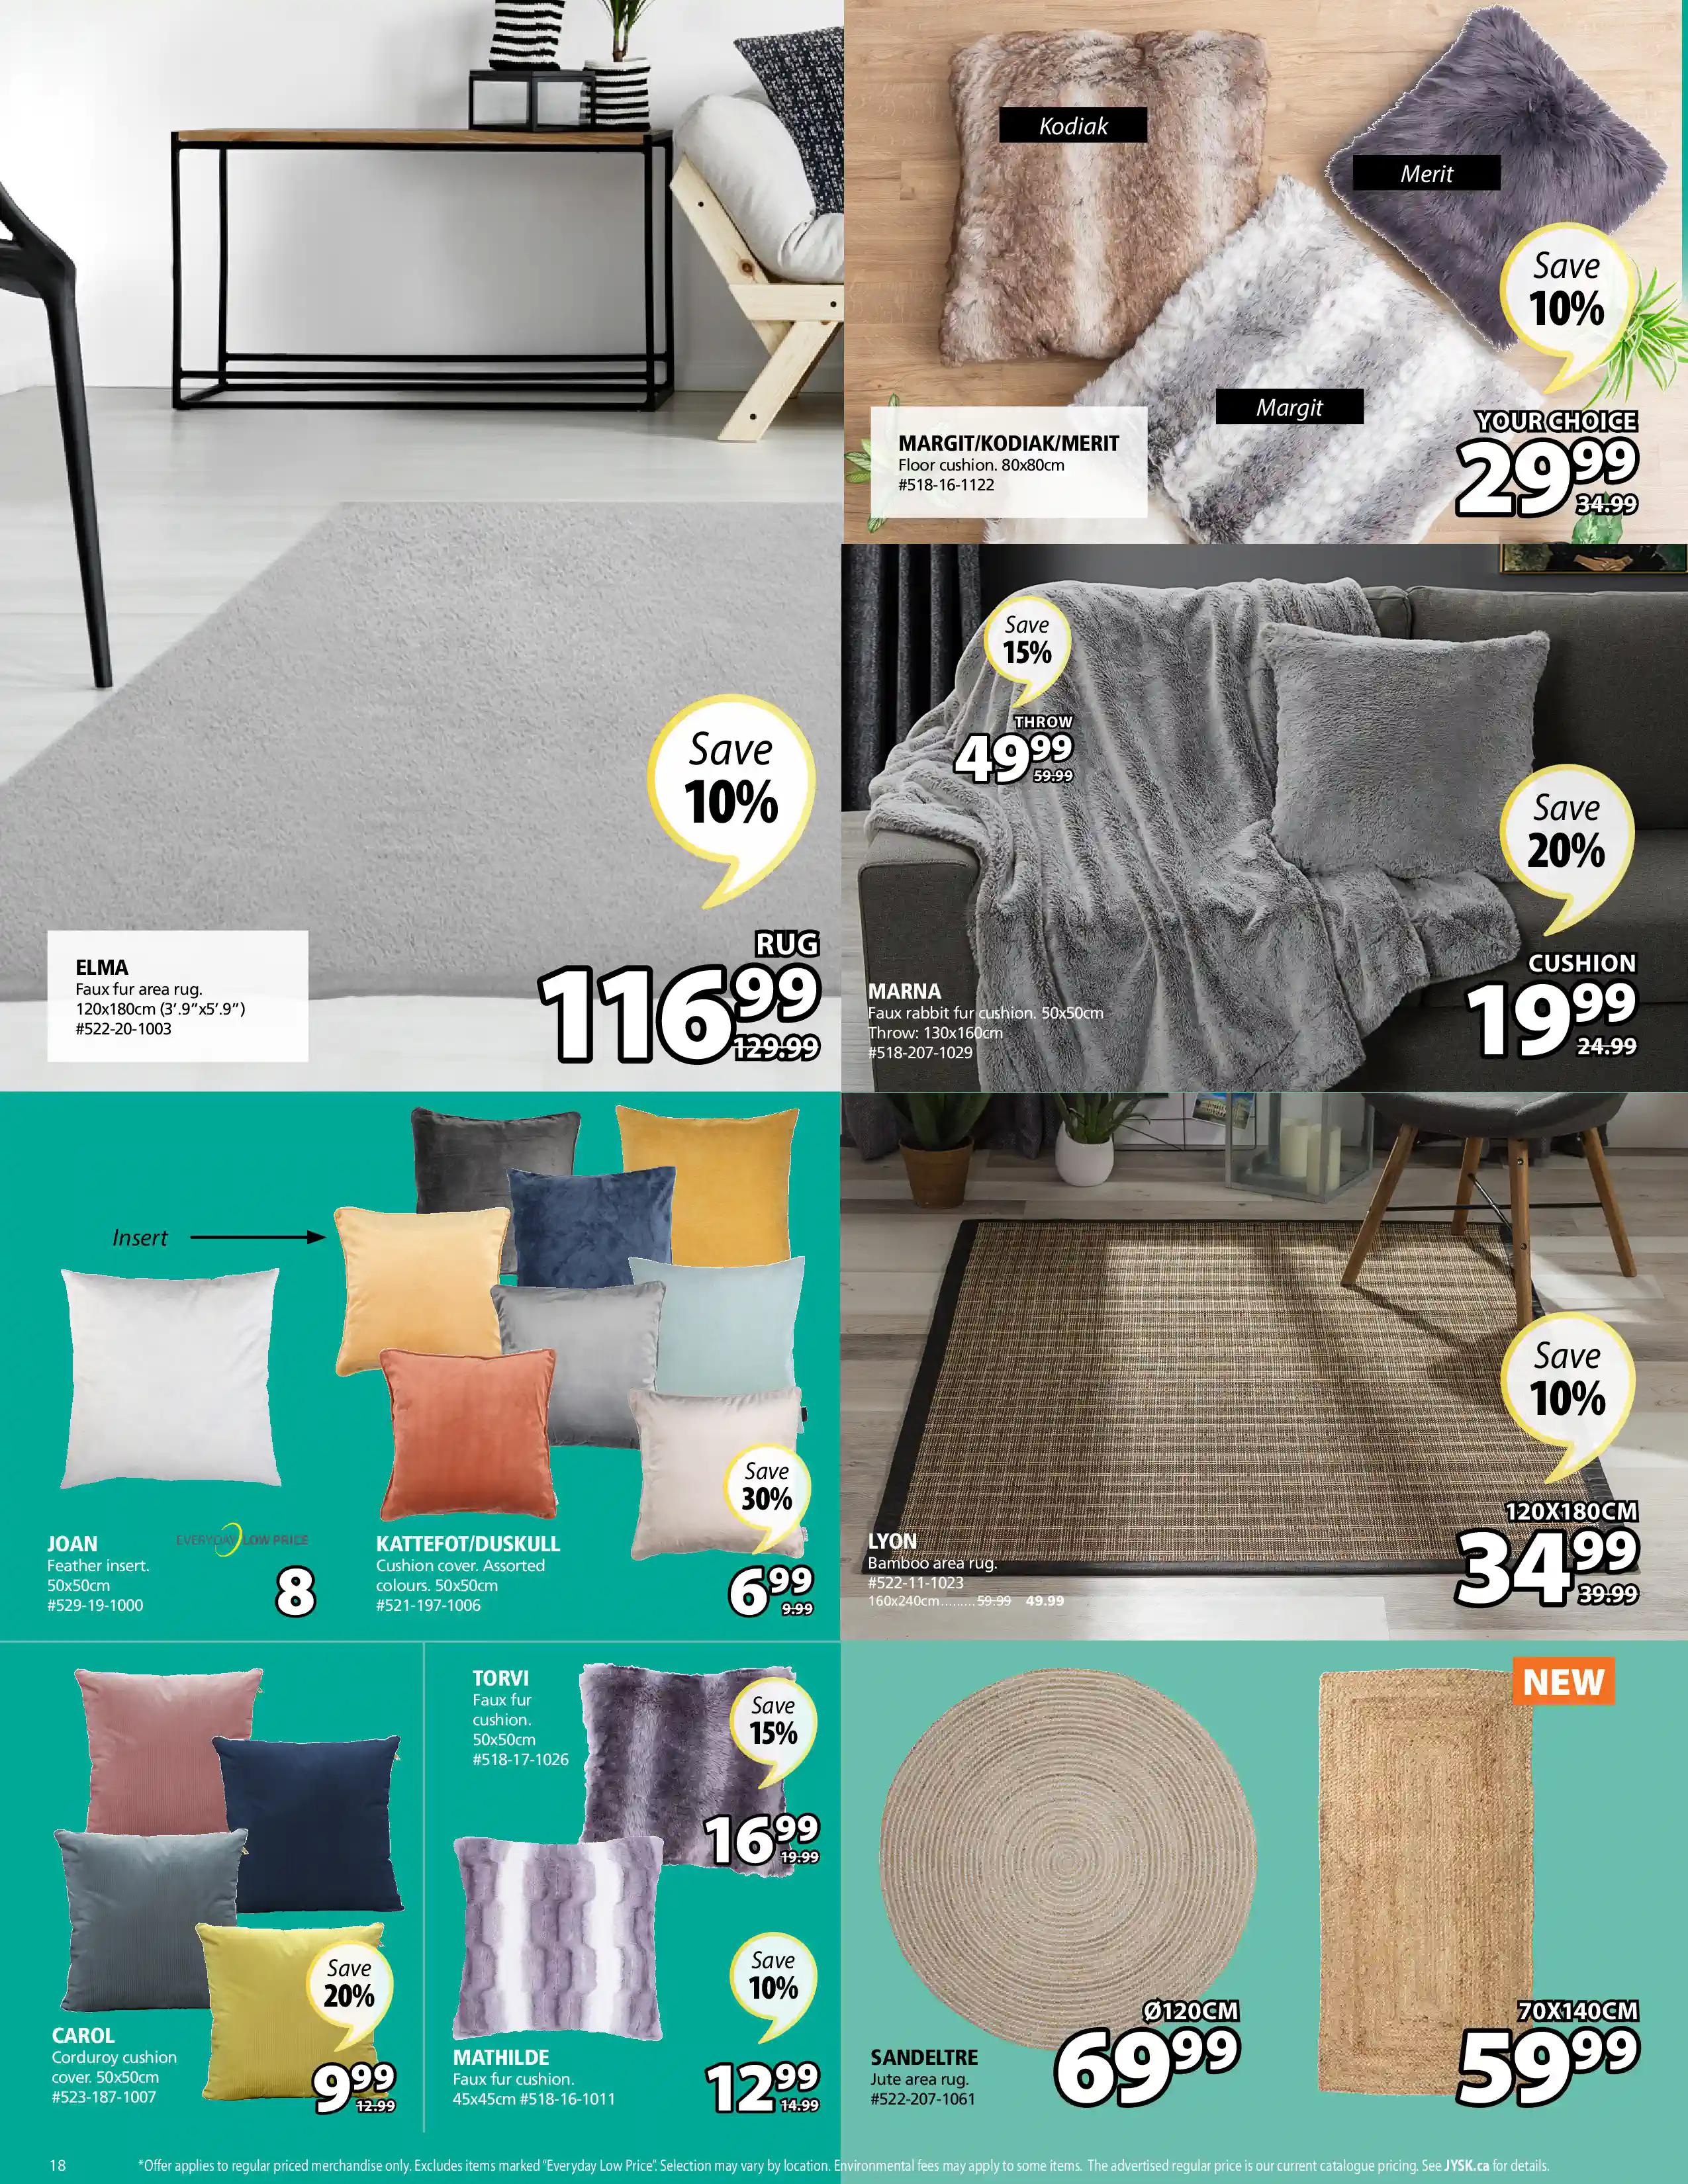 Jysk - Weekly Flyer Specials - Page 18